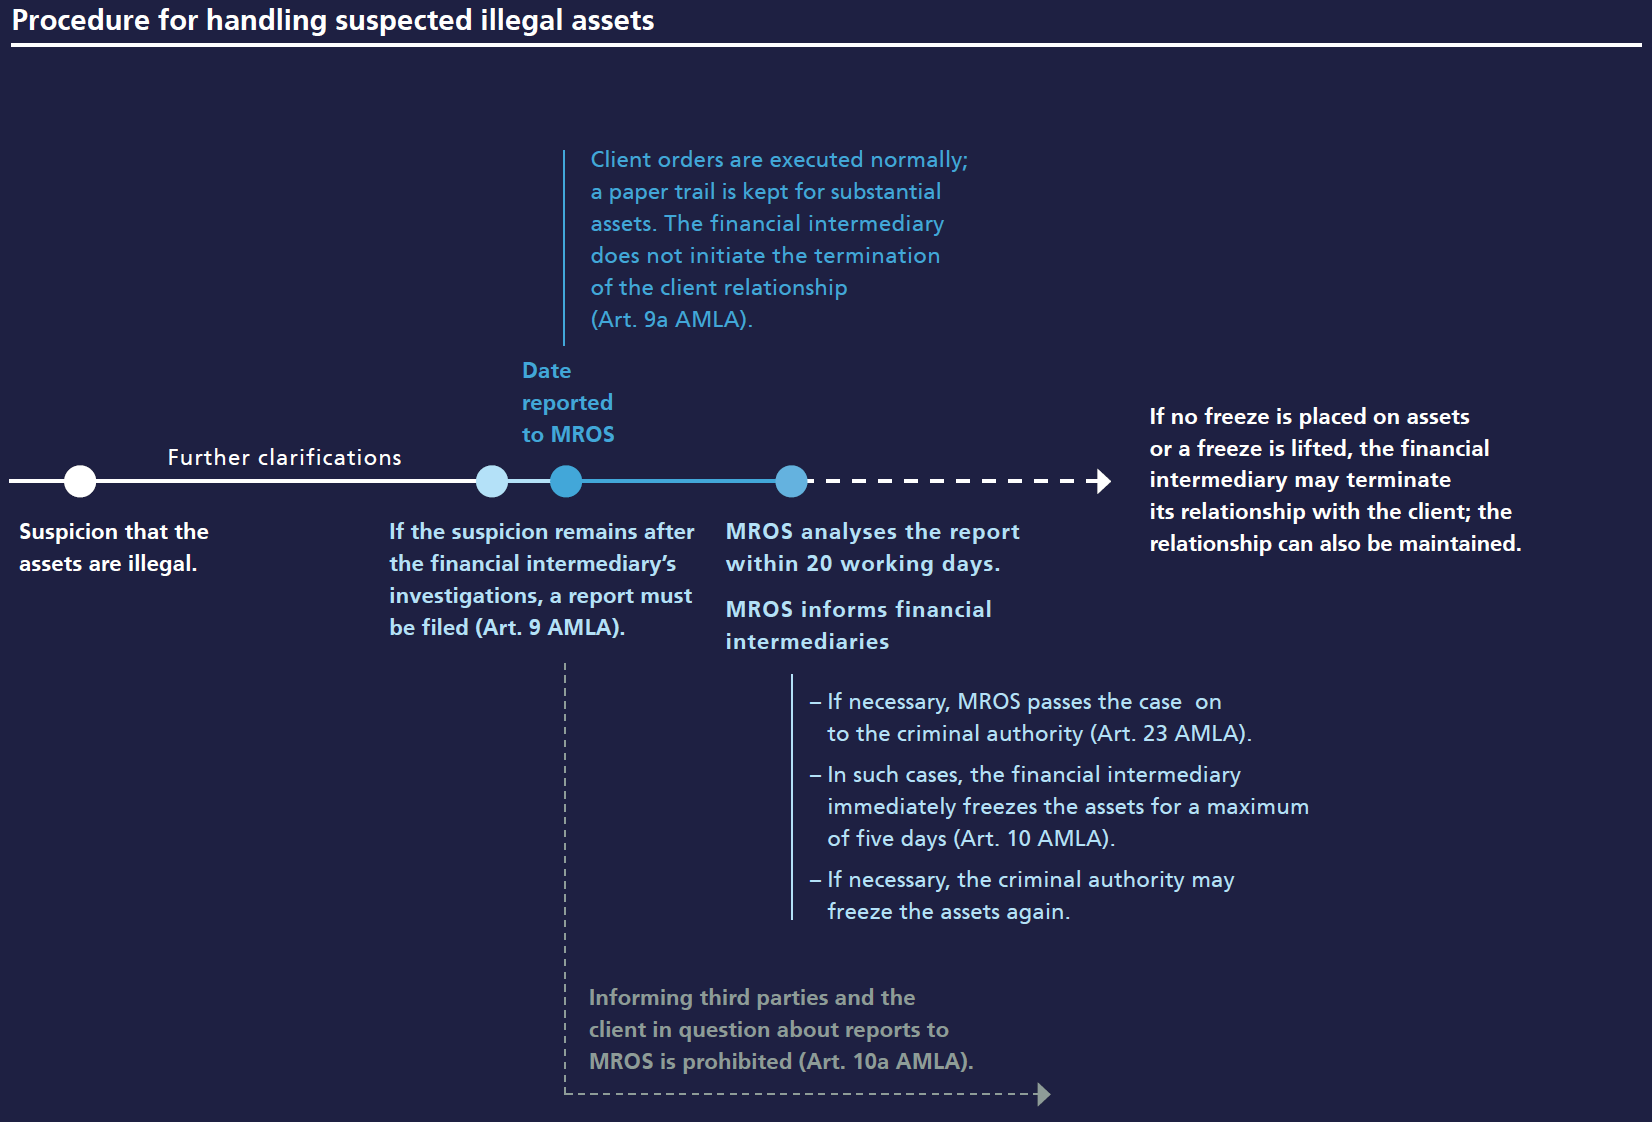 Procedure for handling suspected illegal assets